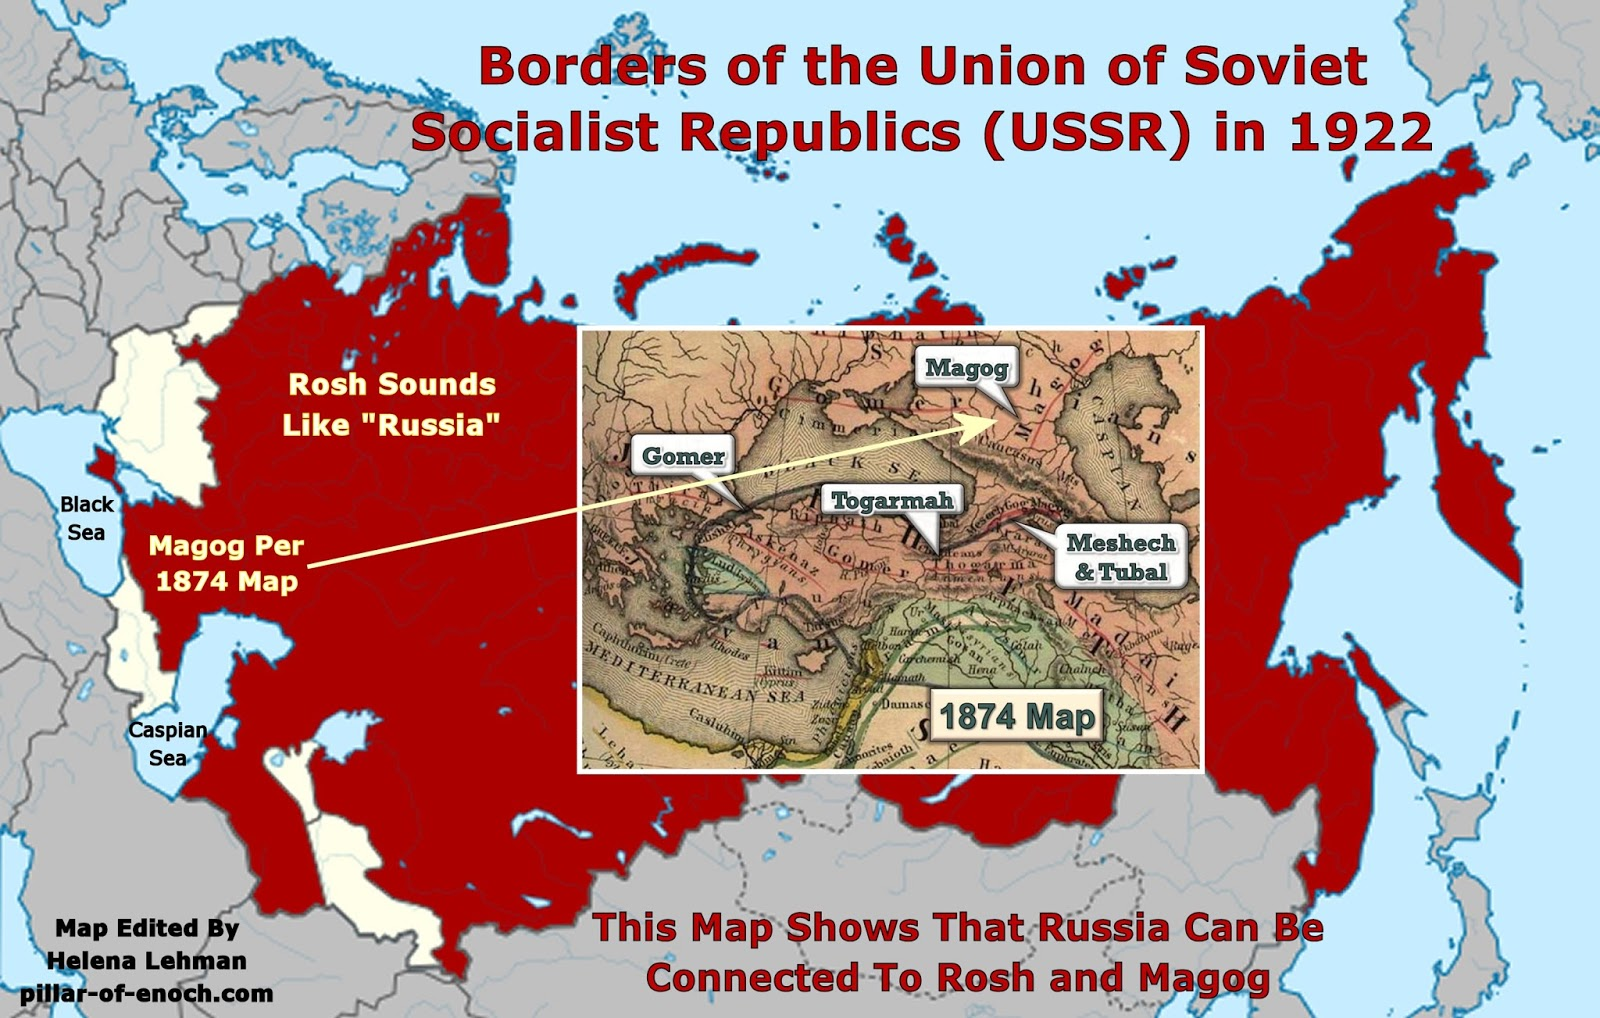 Pillar of Enoch Ministry Blog WHY RUSSIA IS MAGOG AND PUTIN MAY